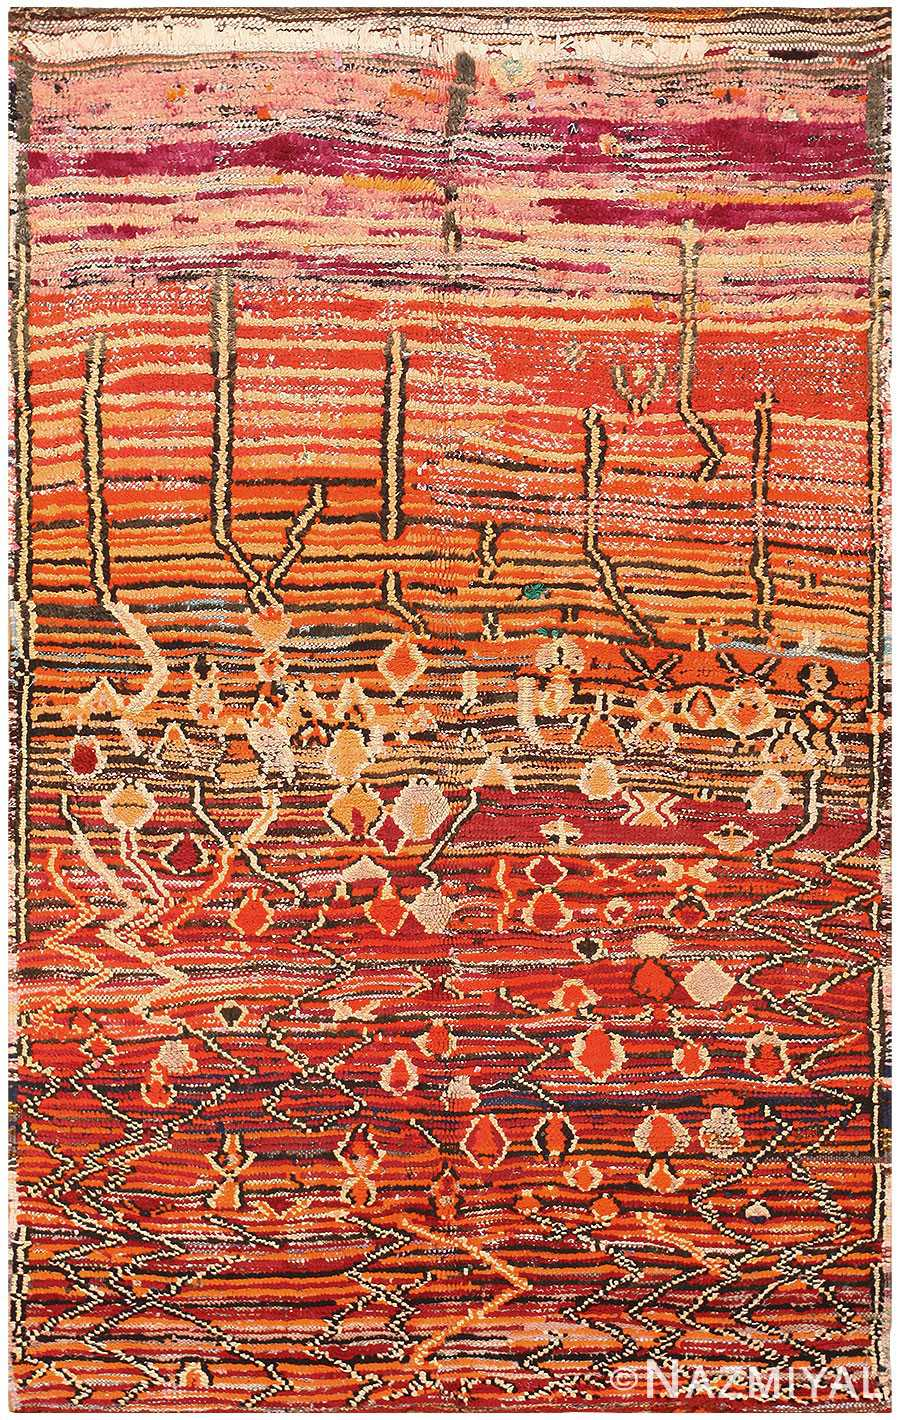 Colorful Vintage Moroccan Rug 48348 Detail/Large View